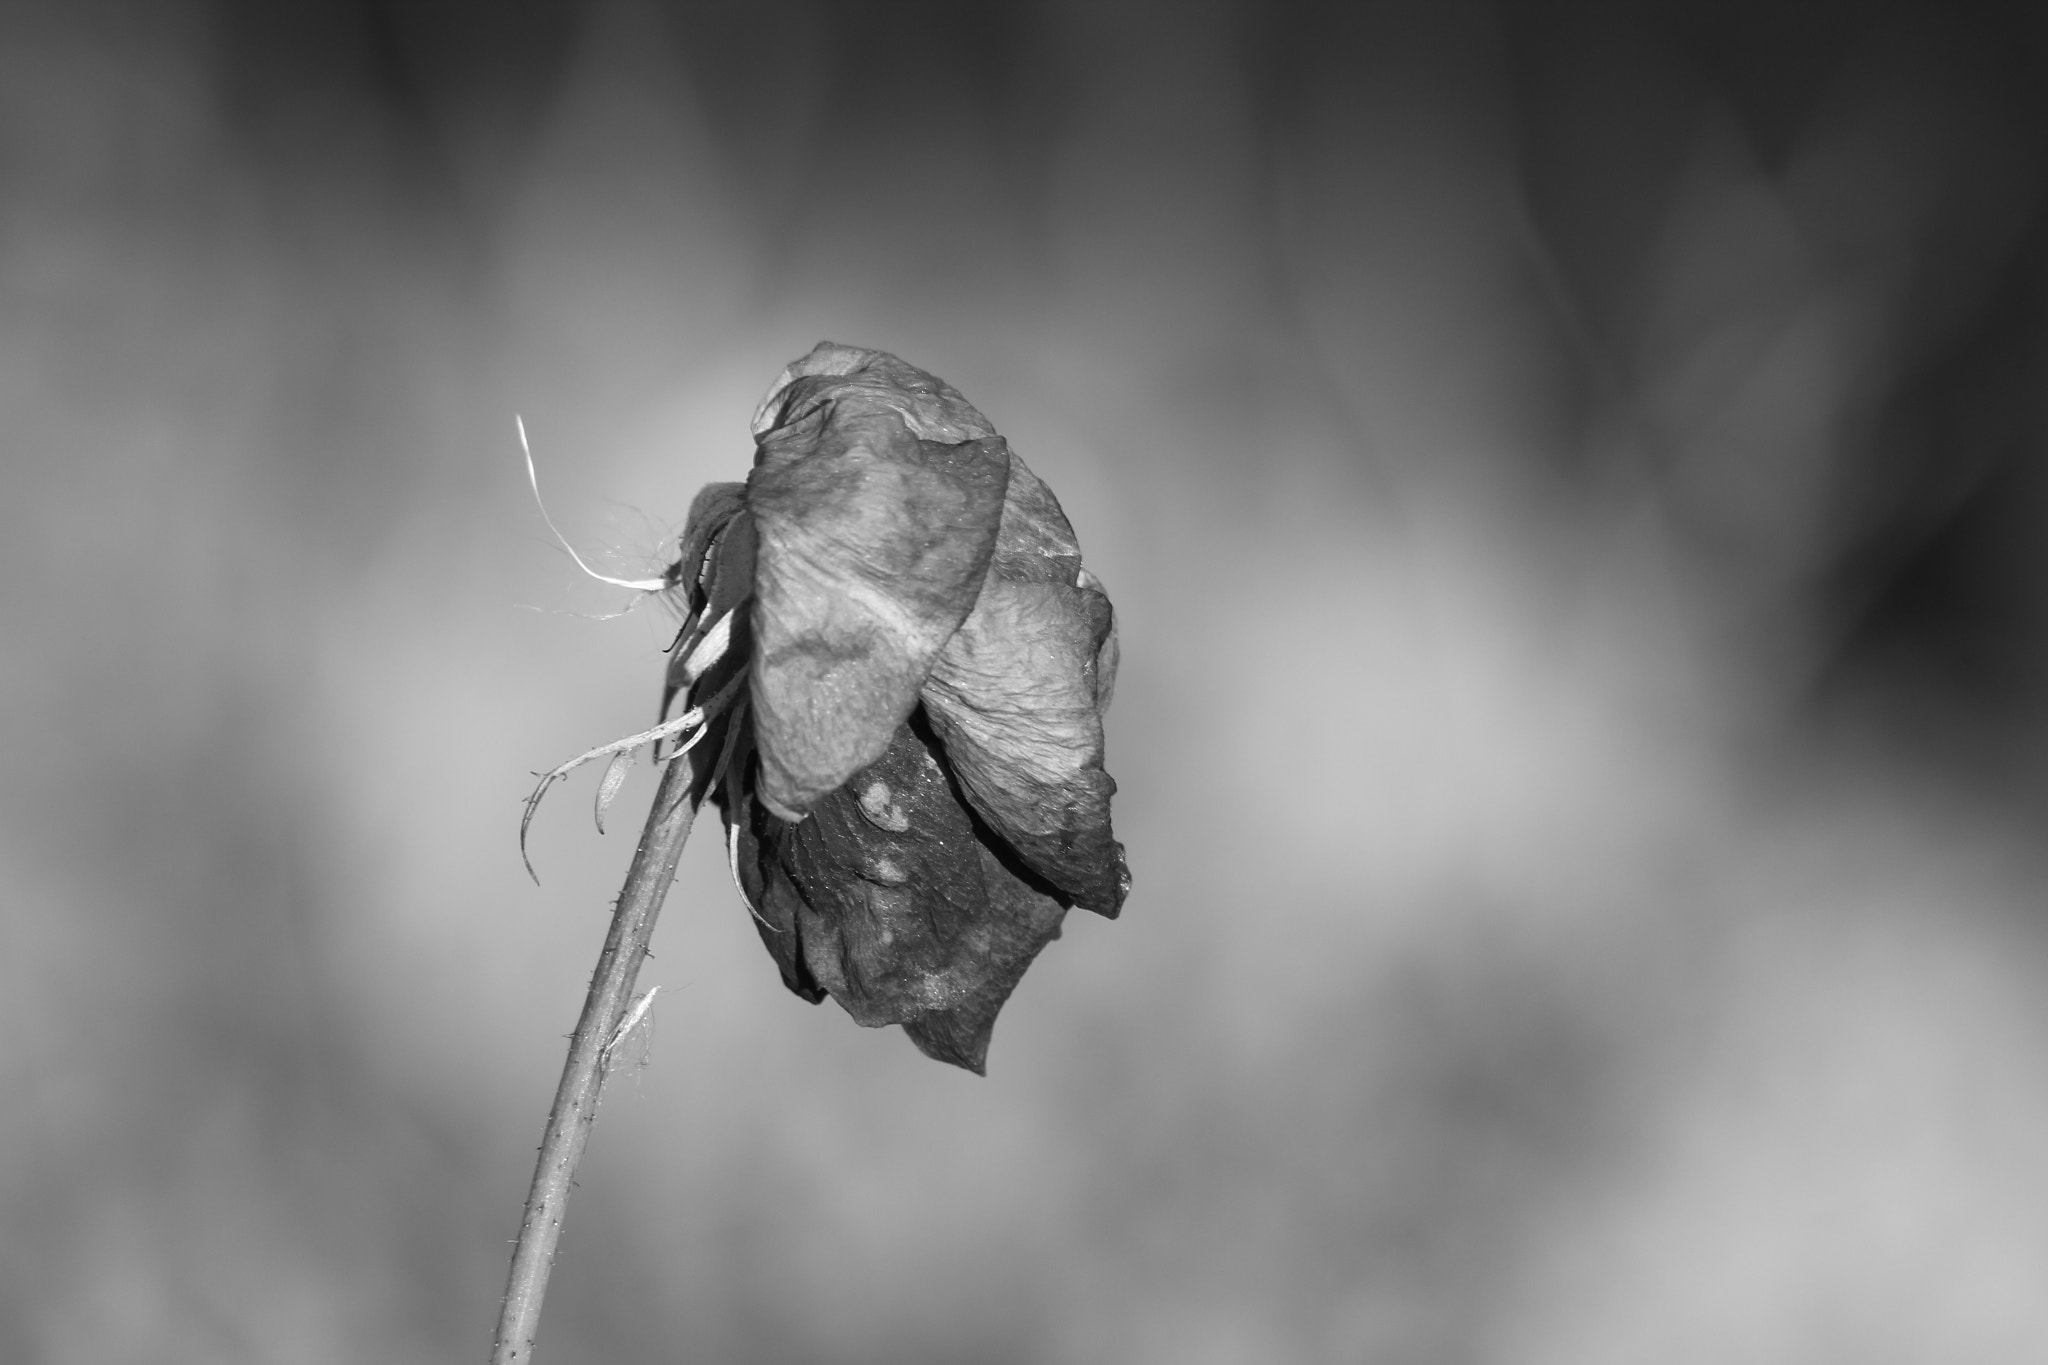 Photograph waiting for spring  by Paola Fiore on 500px